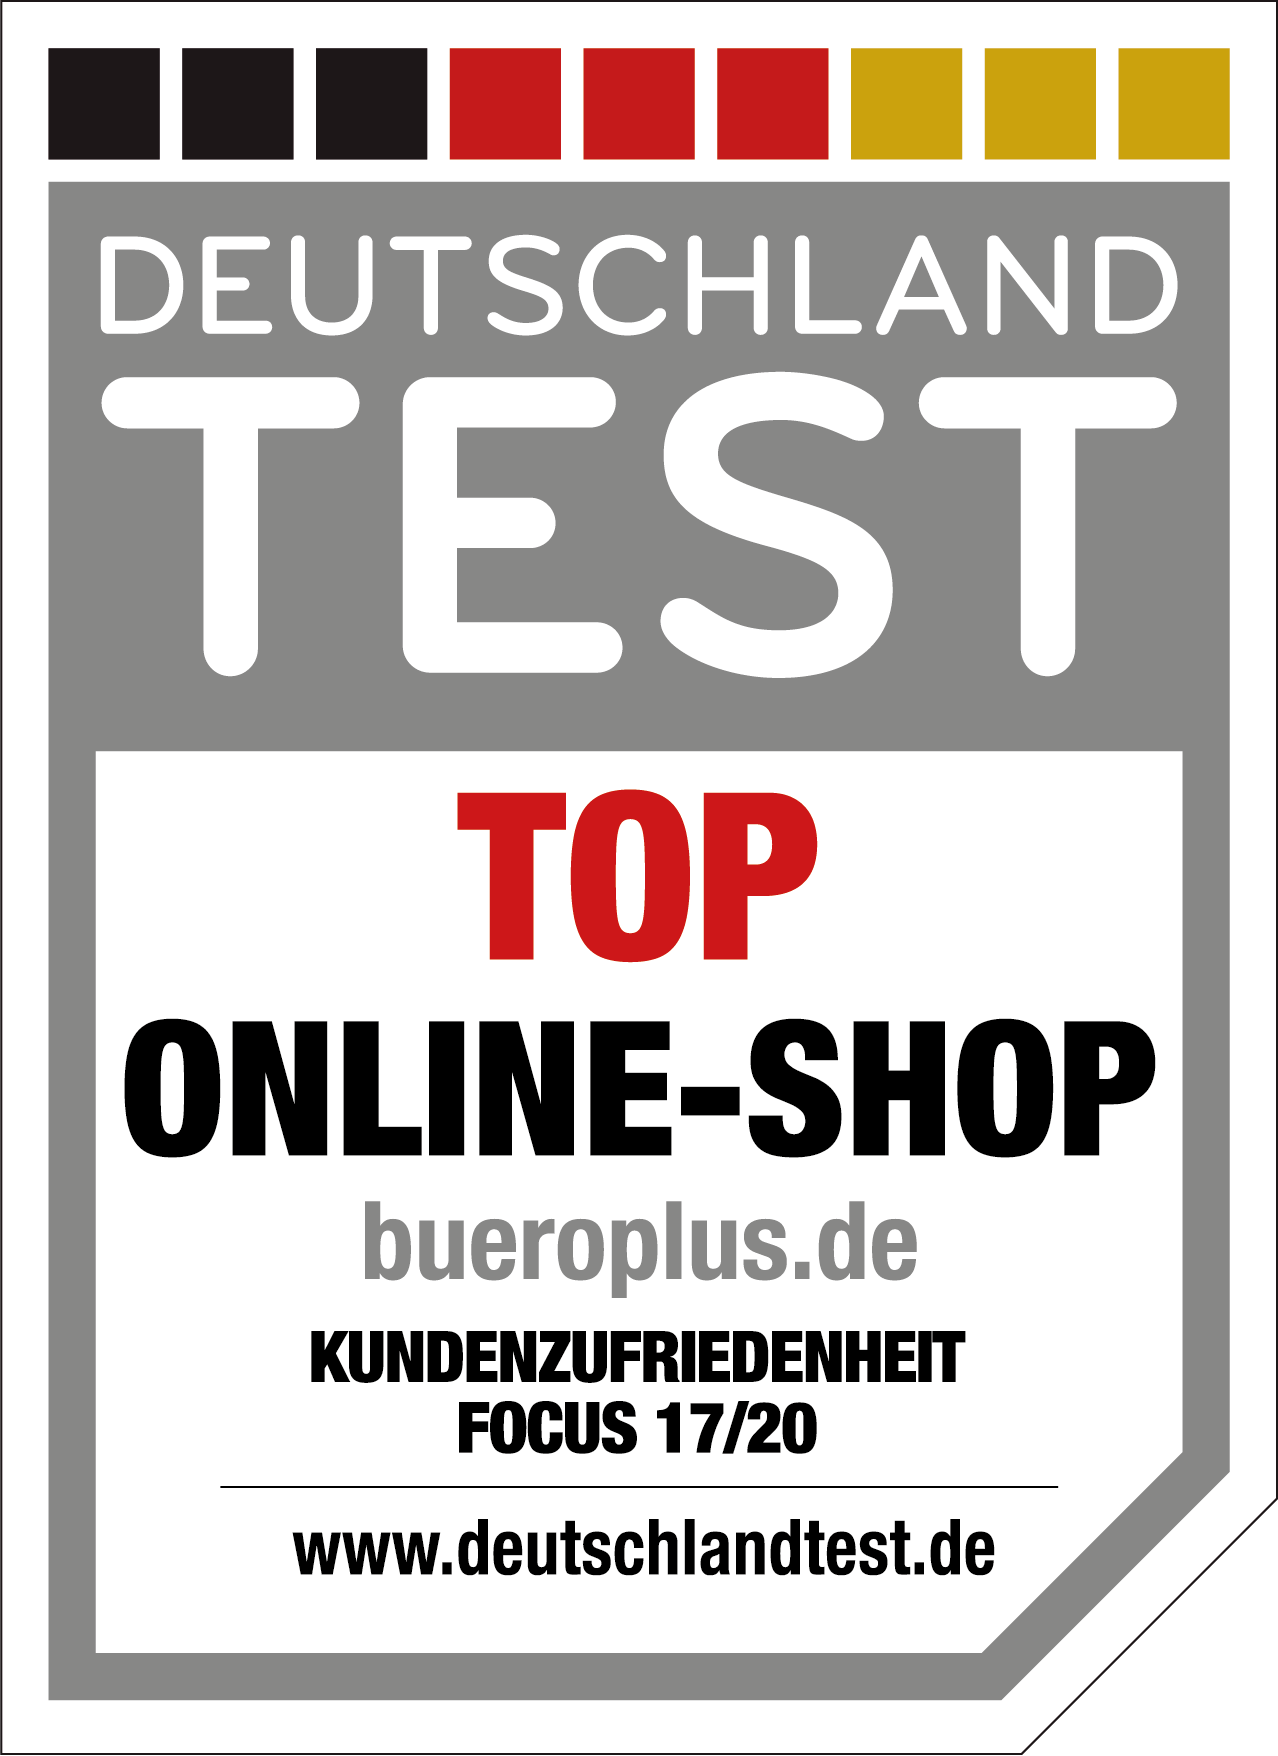 Deutschlandtest Top Online-Shop 2020